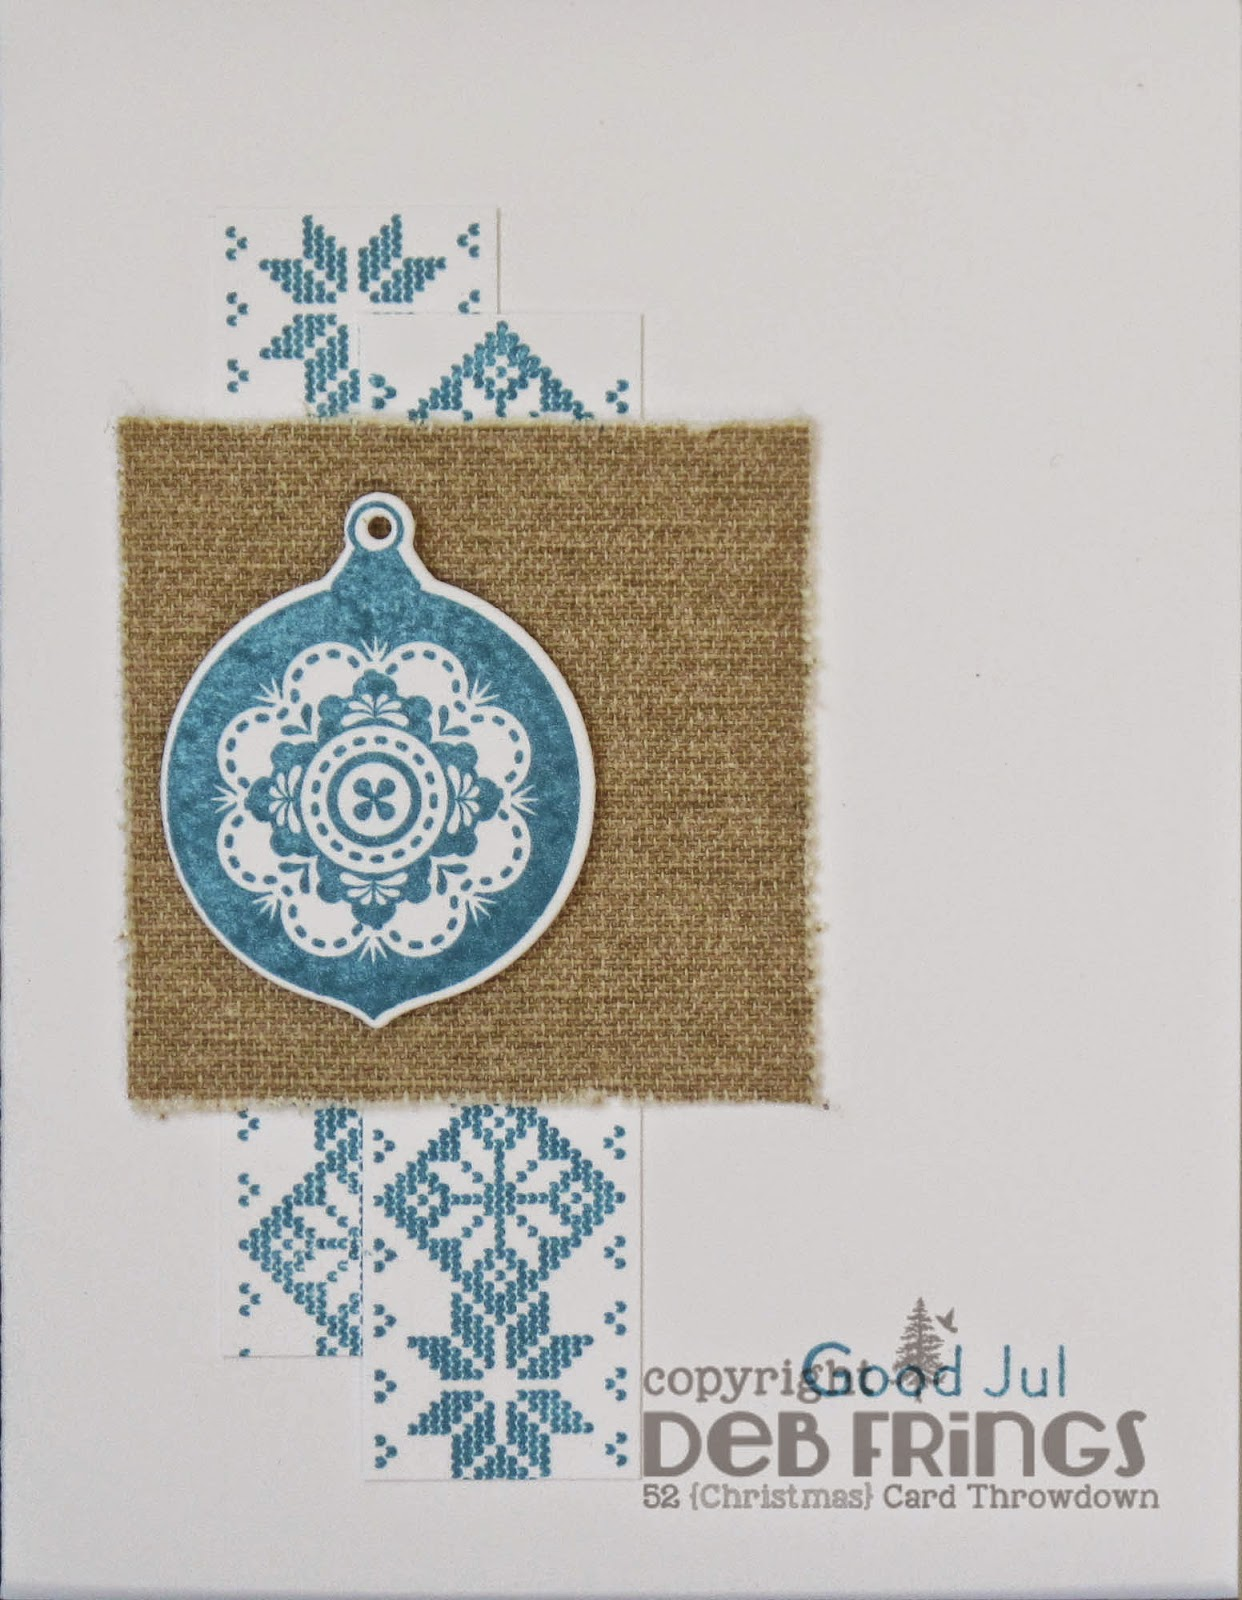 Good Jul Blue - photo by Deborah Frings - Deborah's Gems